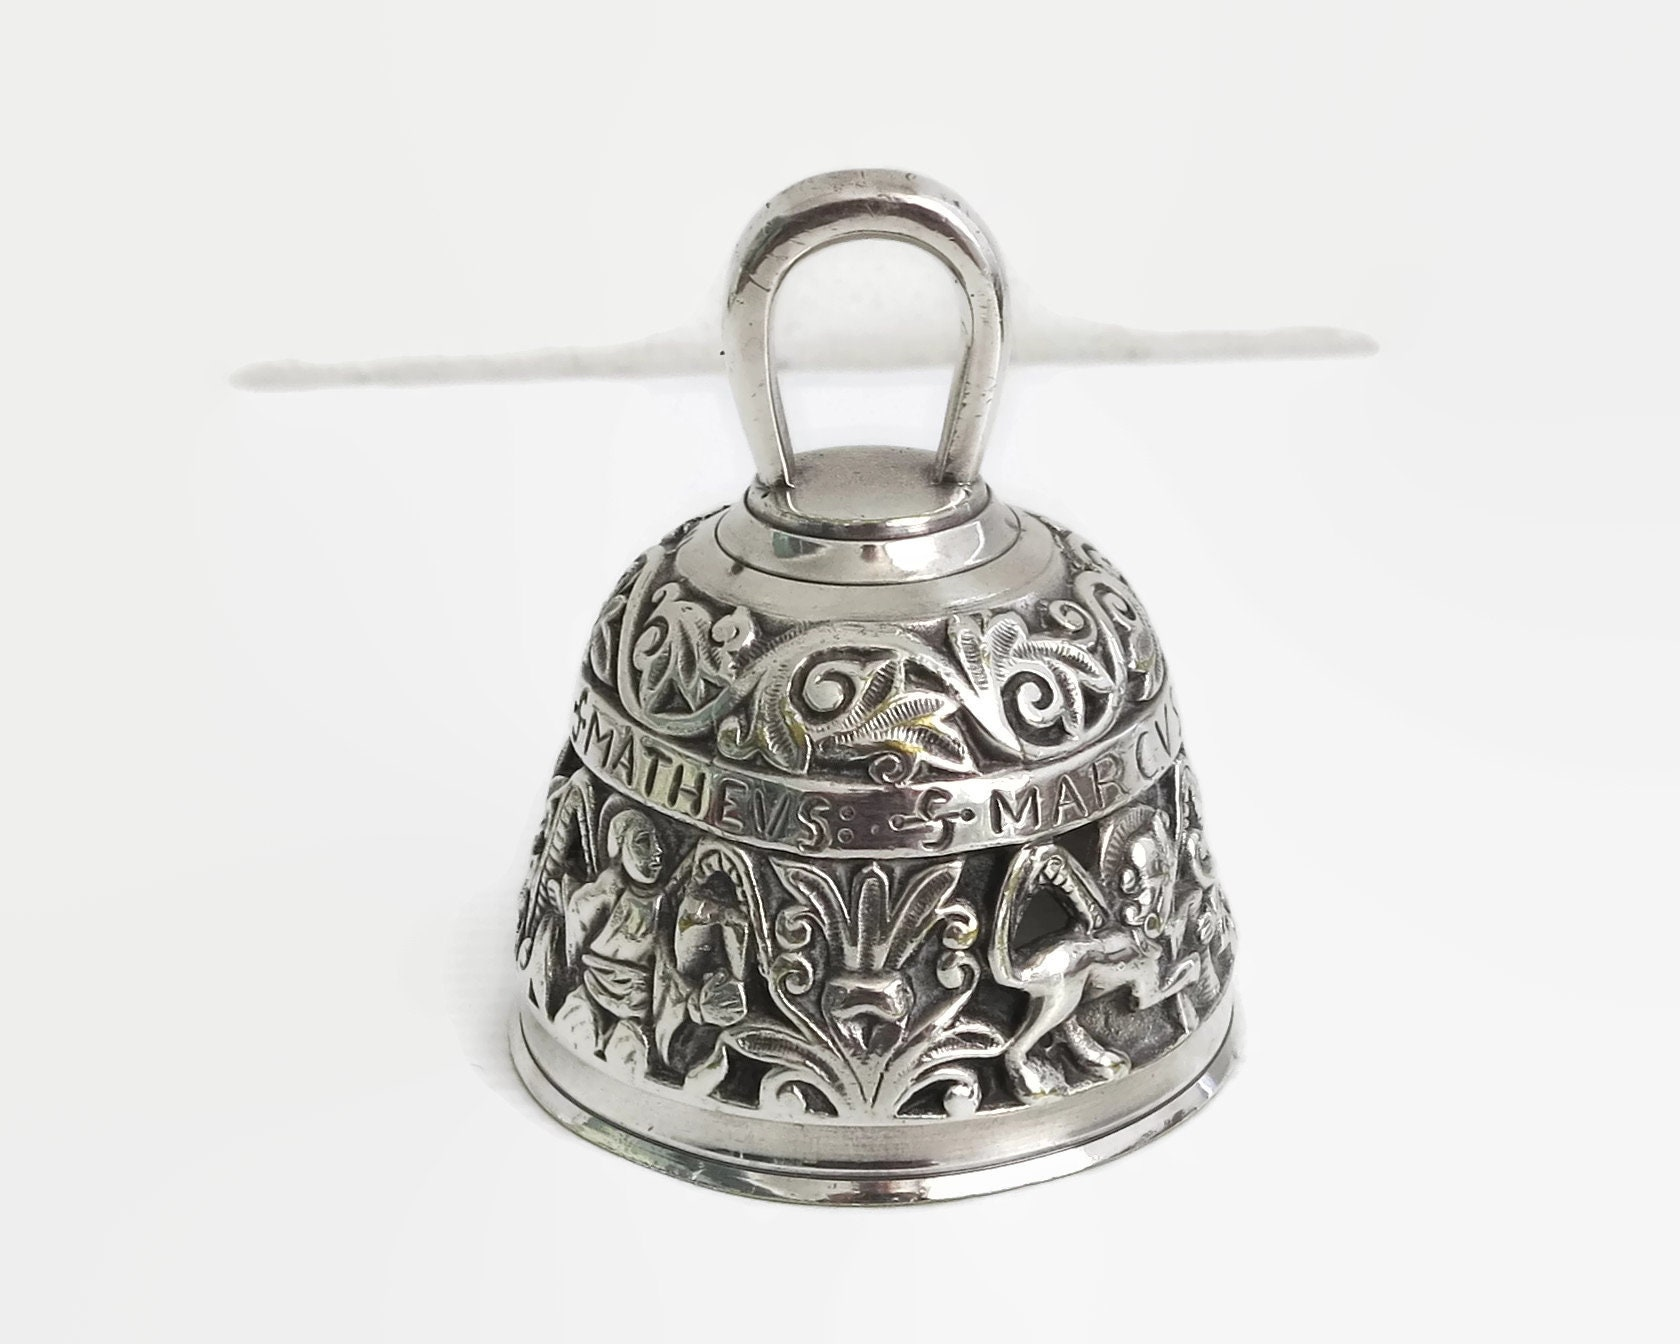 Vintage silver Apostle hand bell, combination of embossed